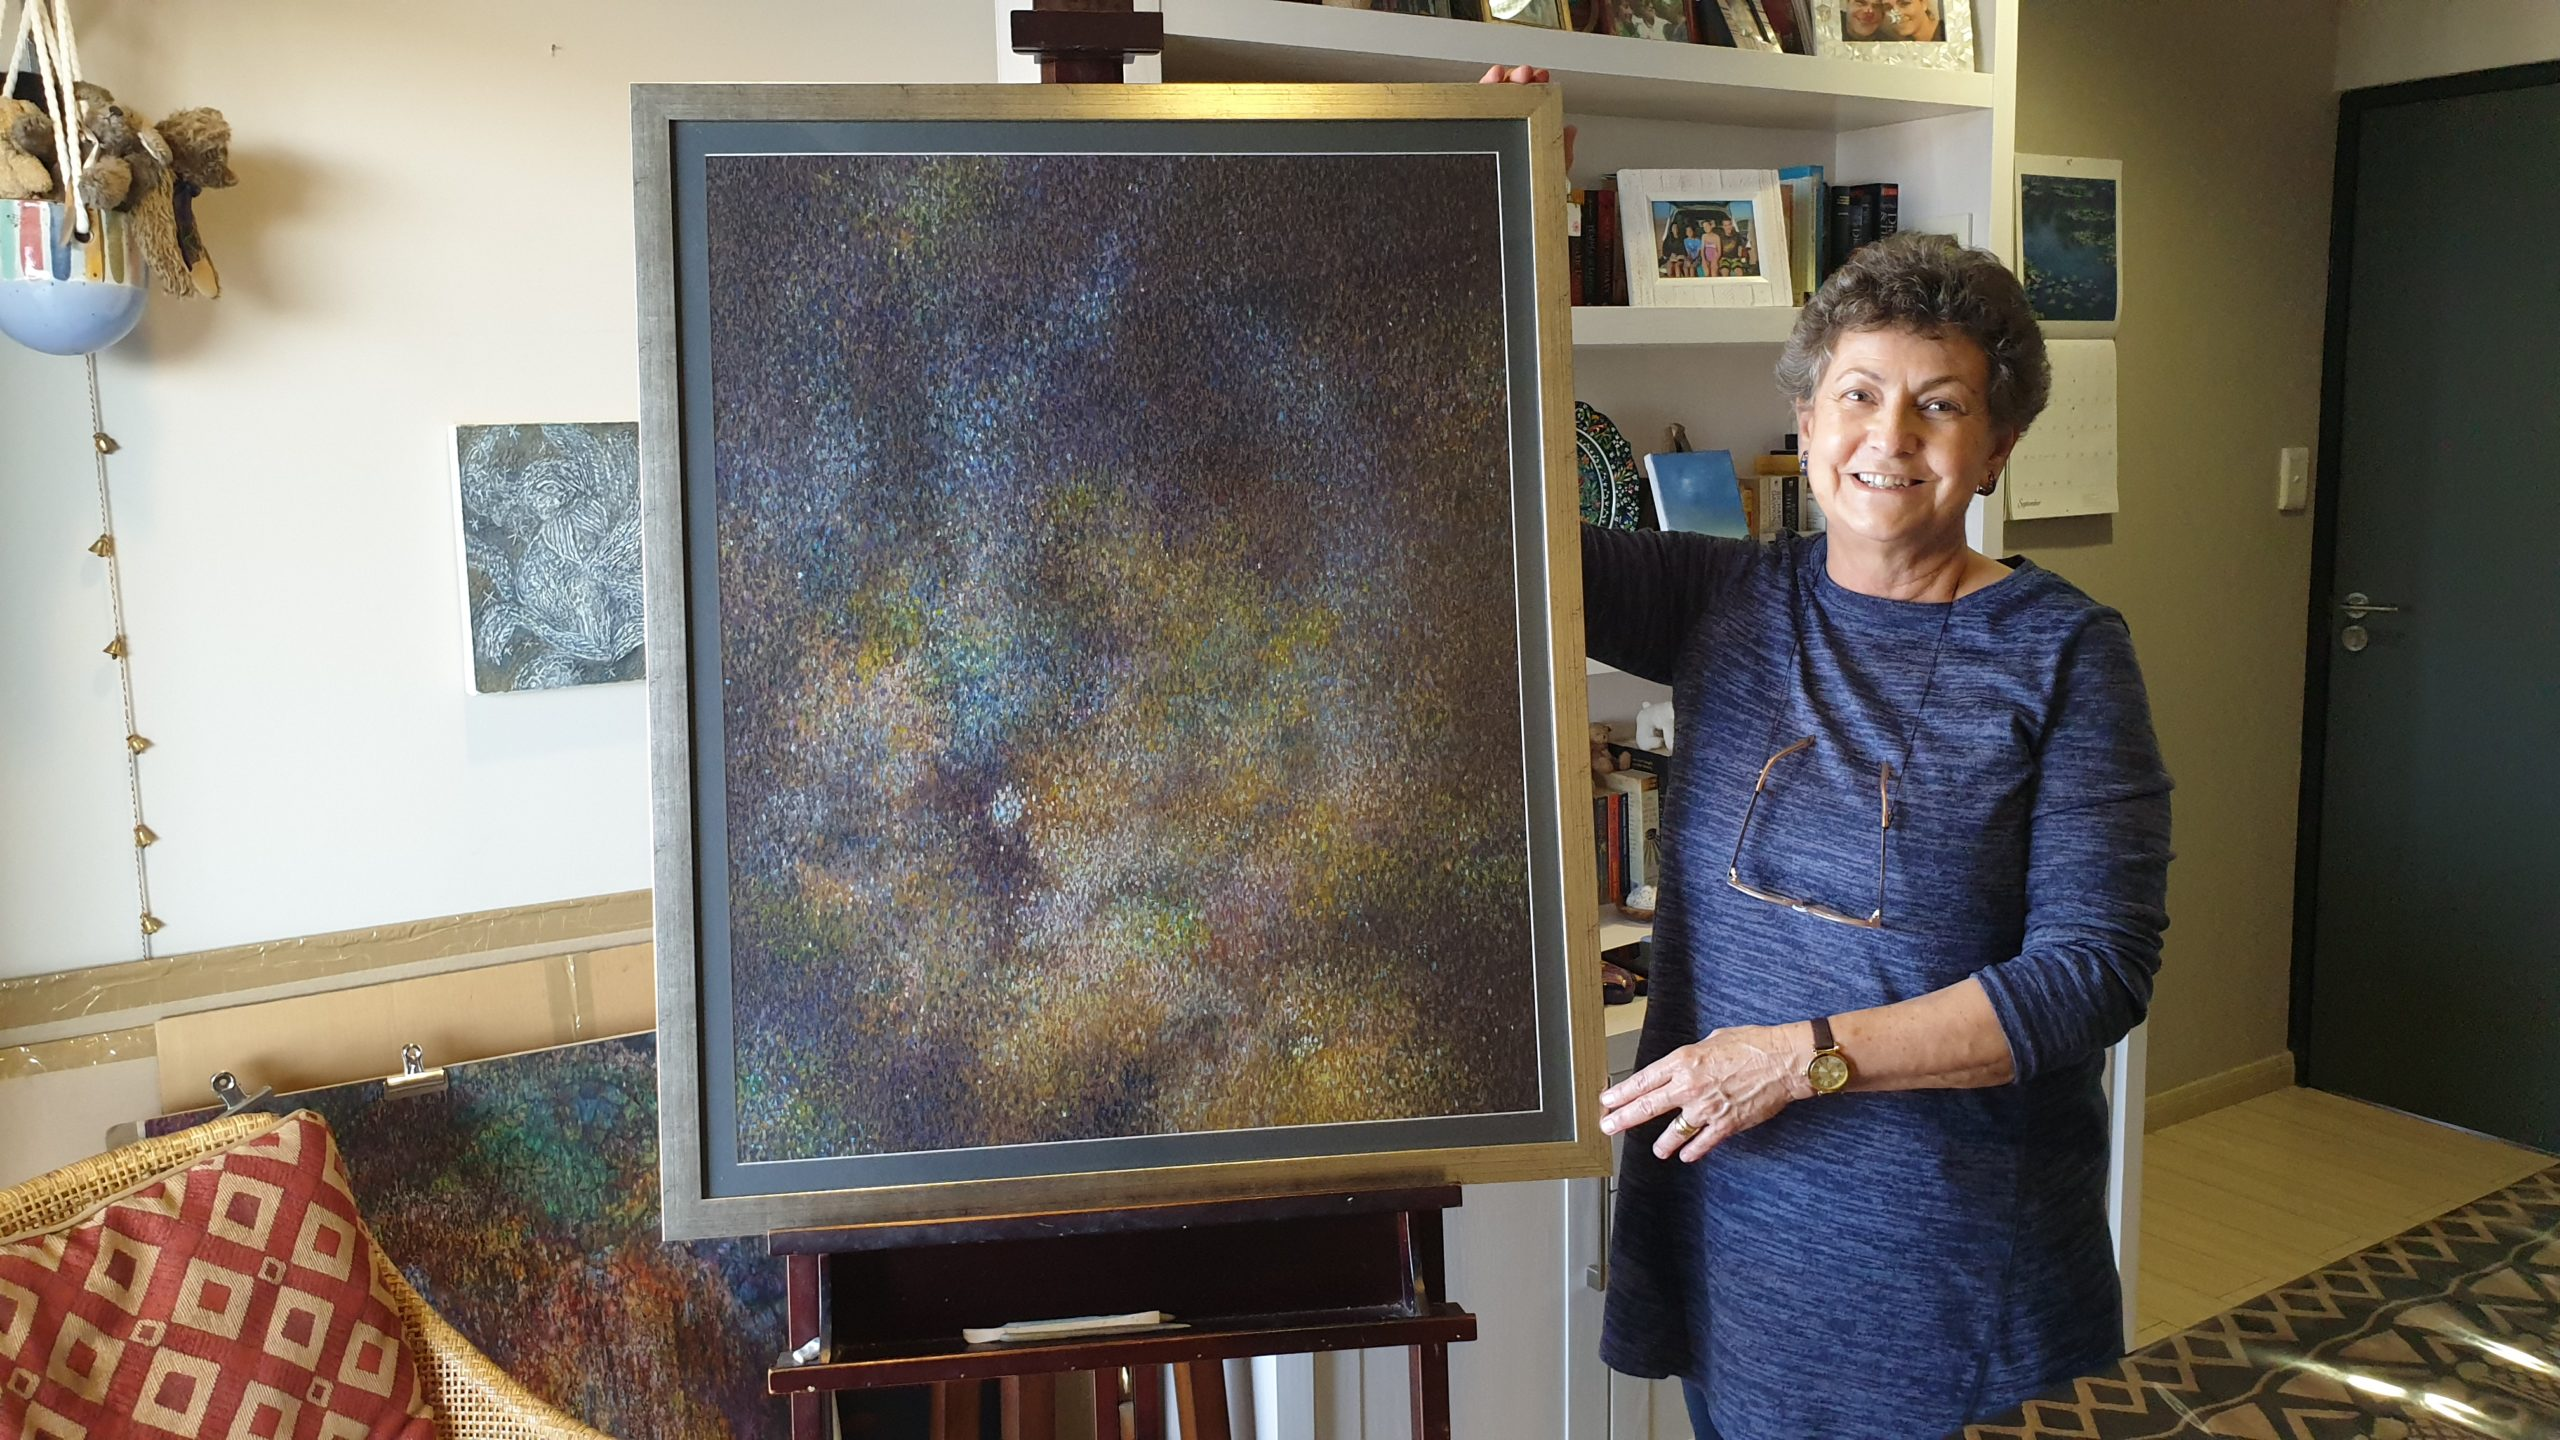 Margie Nienaber | Here Above Beyond | Art Exhibition in Windhoek, Namibia | 24th of October until the 7th of November 2020